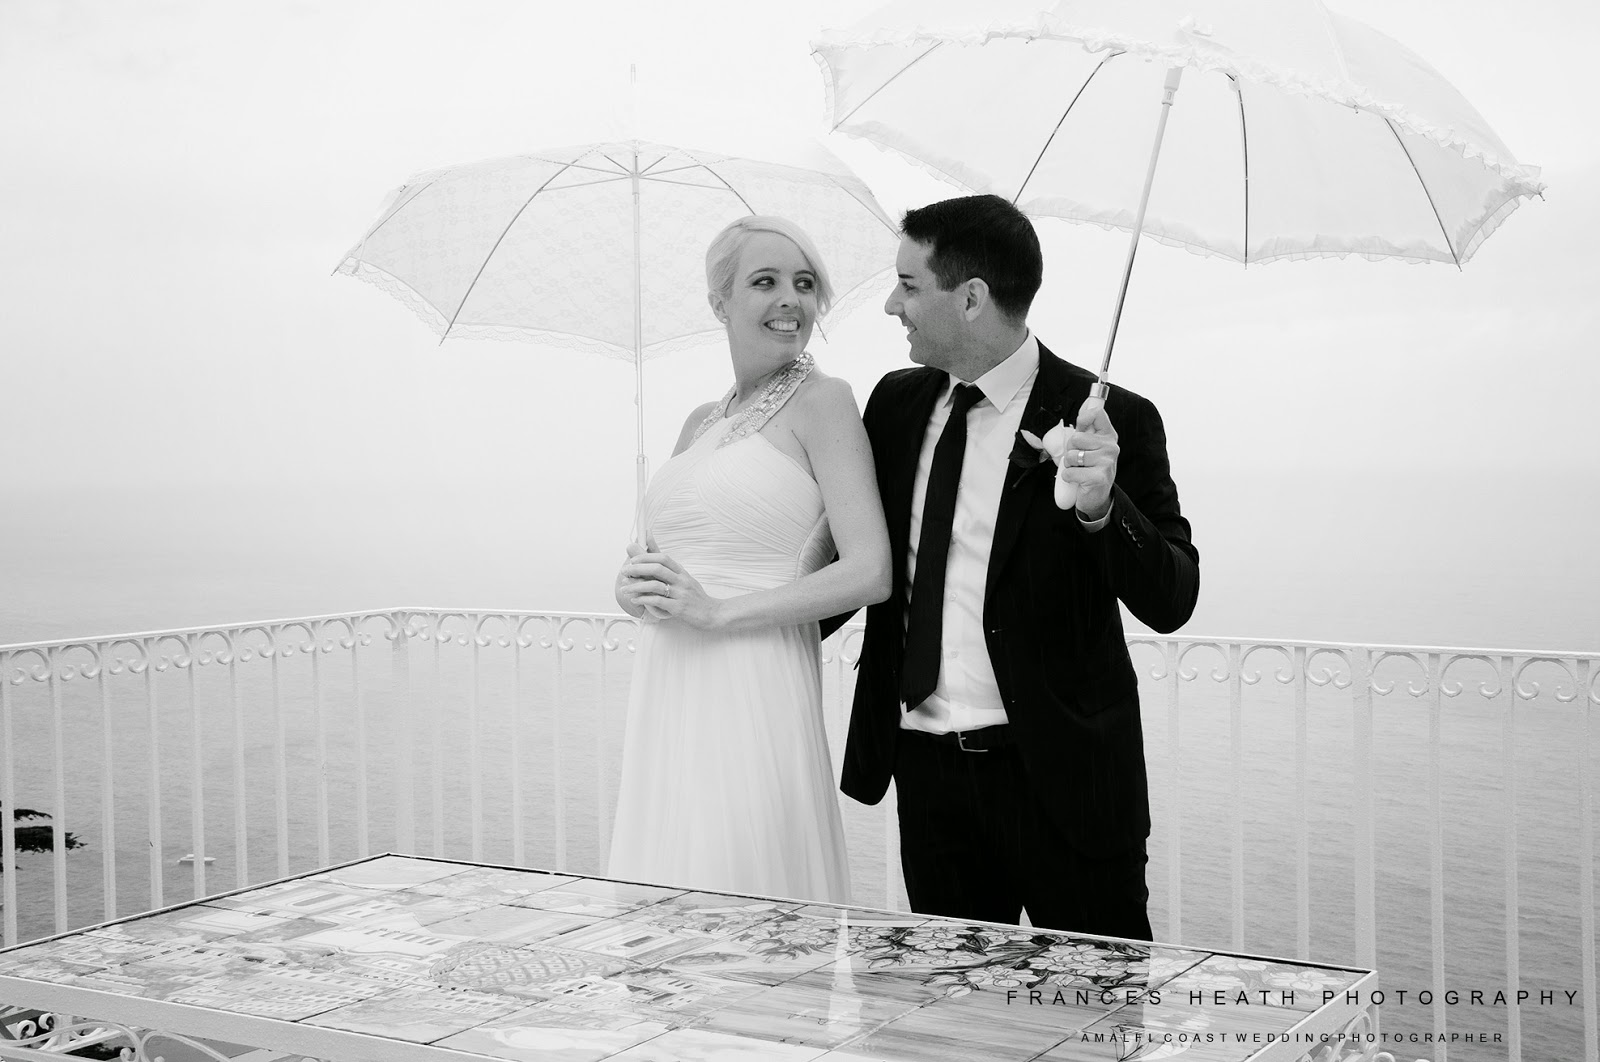 Bride and groom portrait with umbrellas in Positano